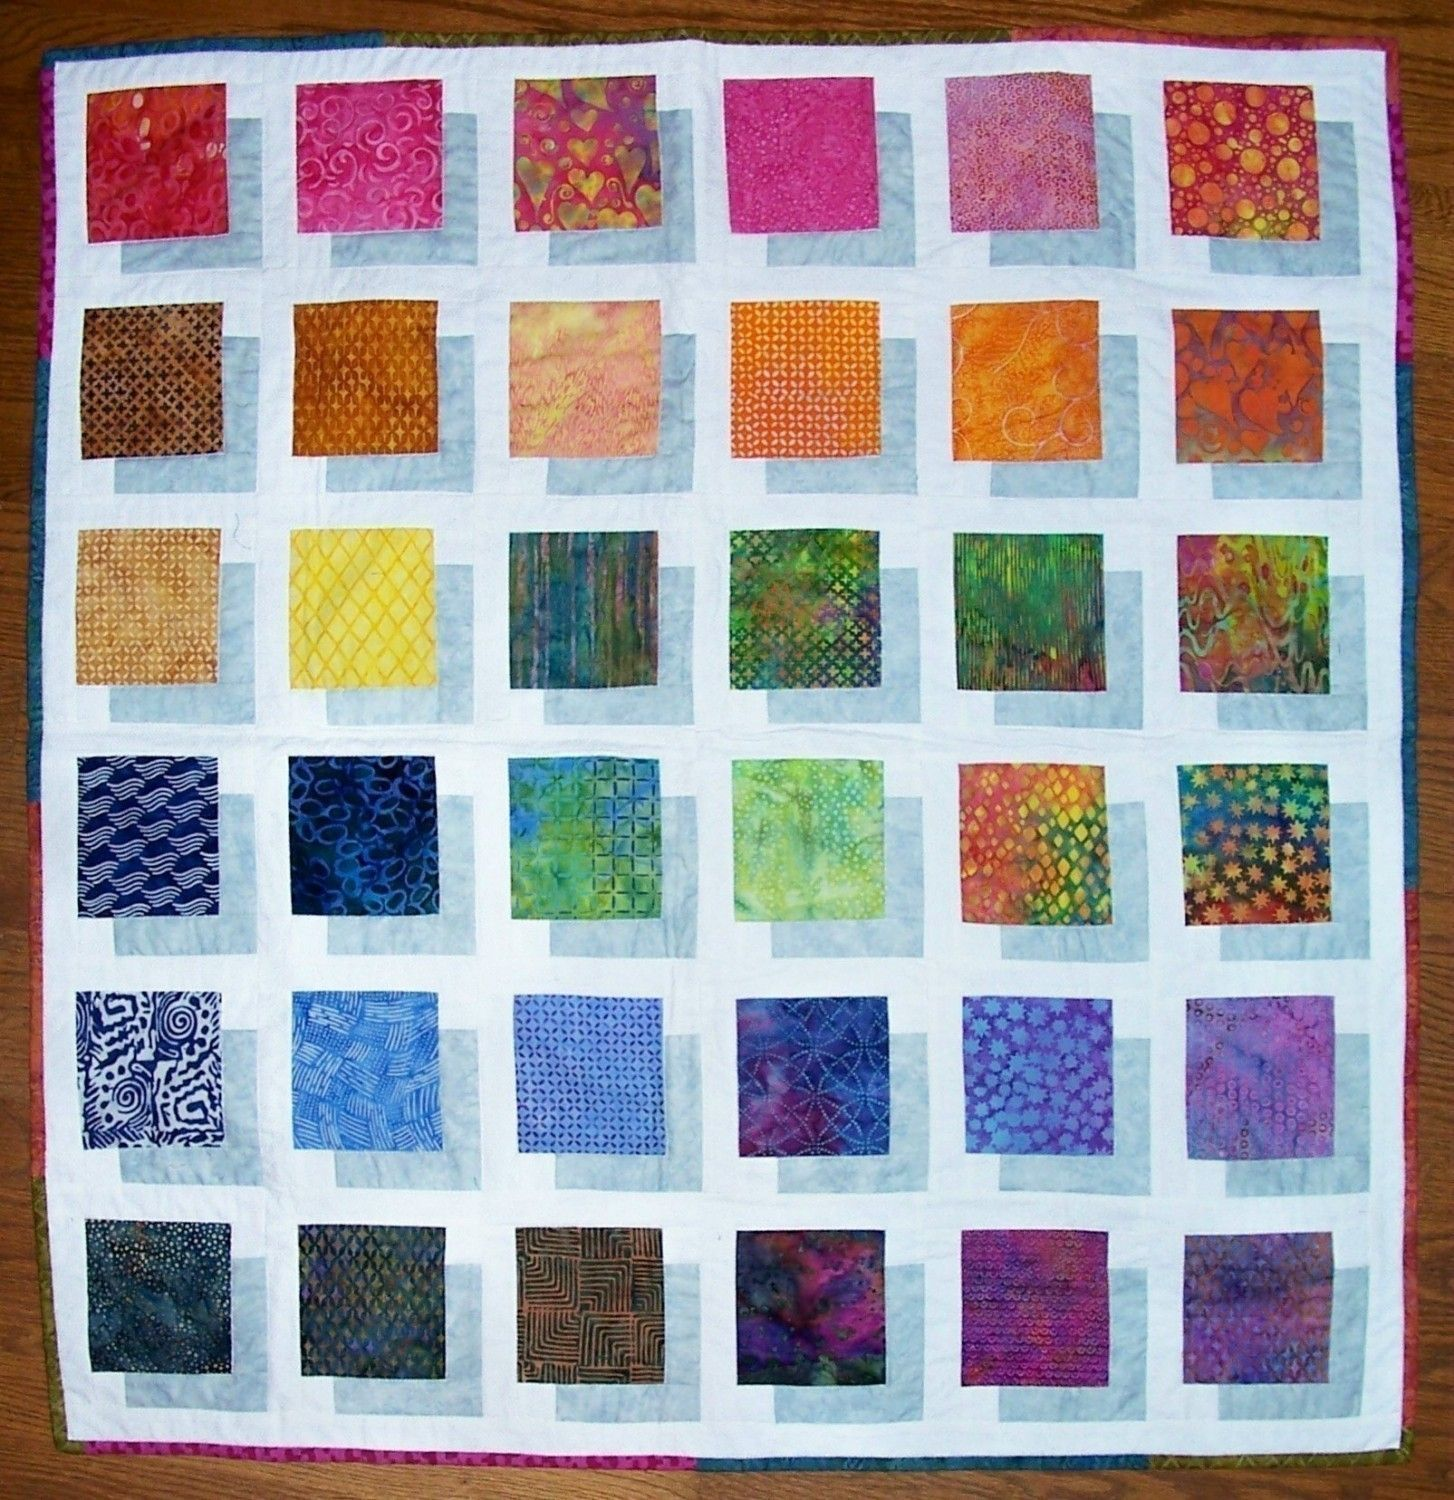 COLOR BLOCK Quilt Pattern to make this Stunning Quilt Full ... : quilts and color - Adamdwight.com